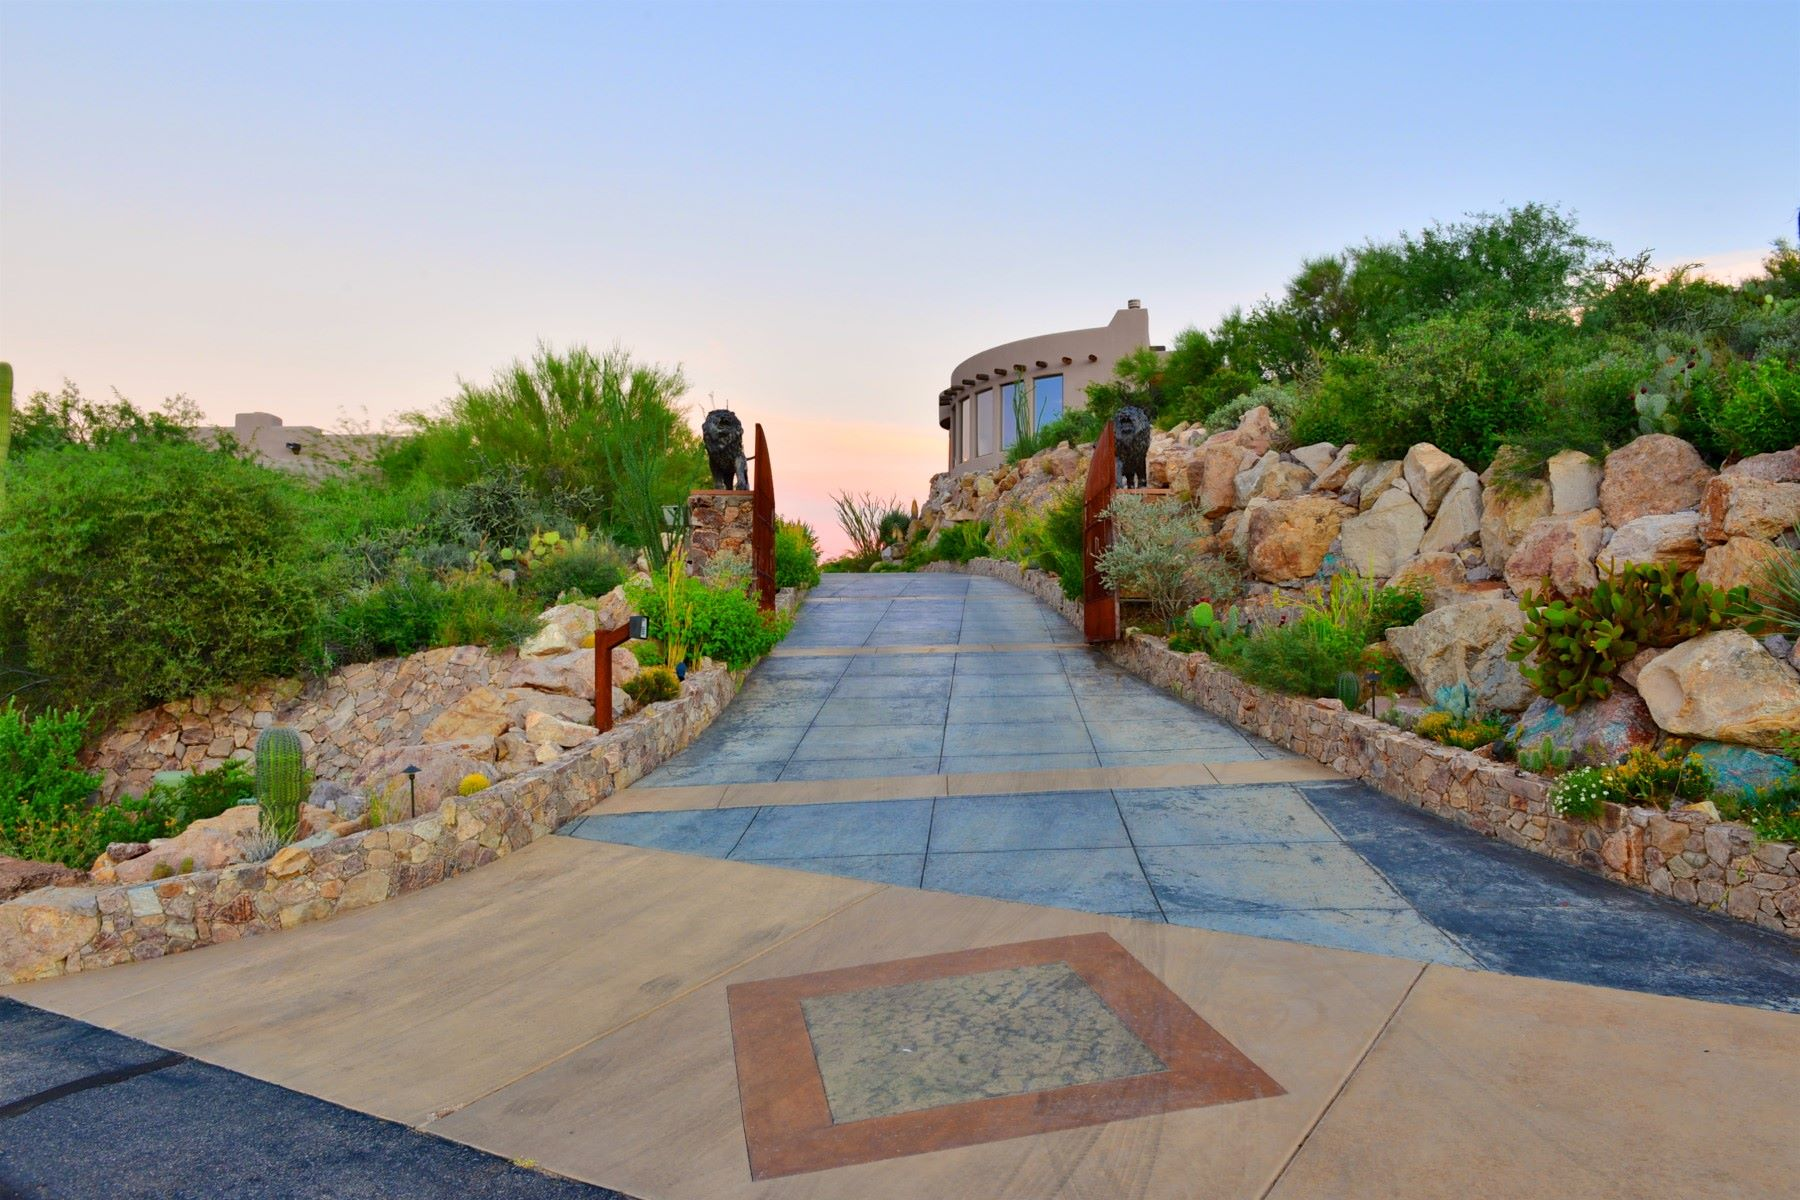 Moradia para Venda às One of the City's Most Private and Meticulously Built Home 5153 W Saguaro Cliffs Drive, Tucson, Arizona, 85745 Estados Unidos